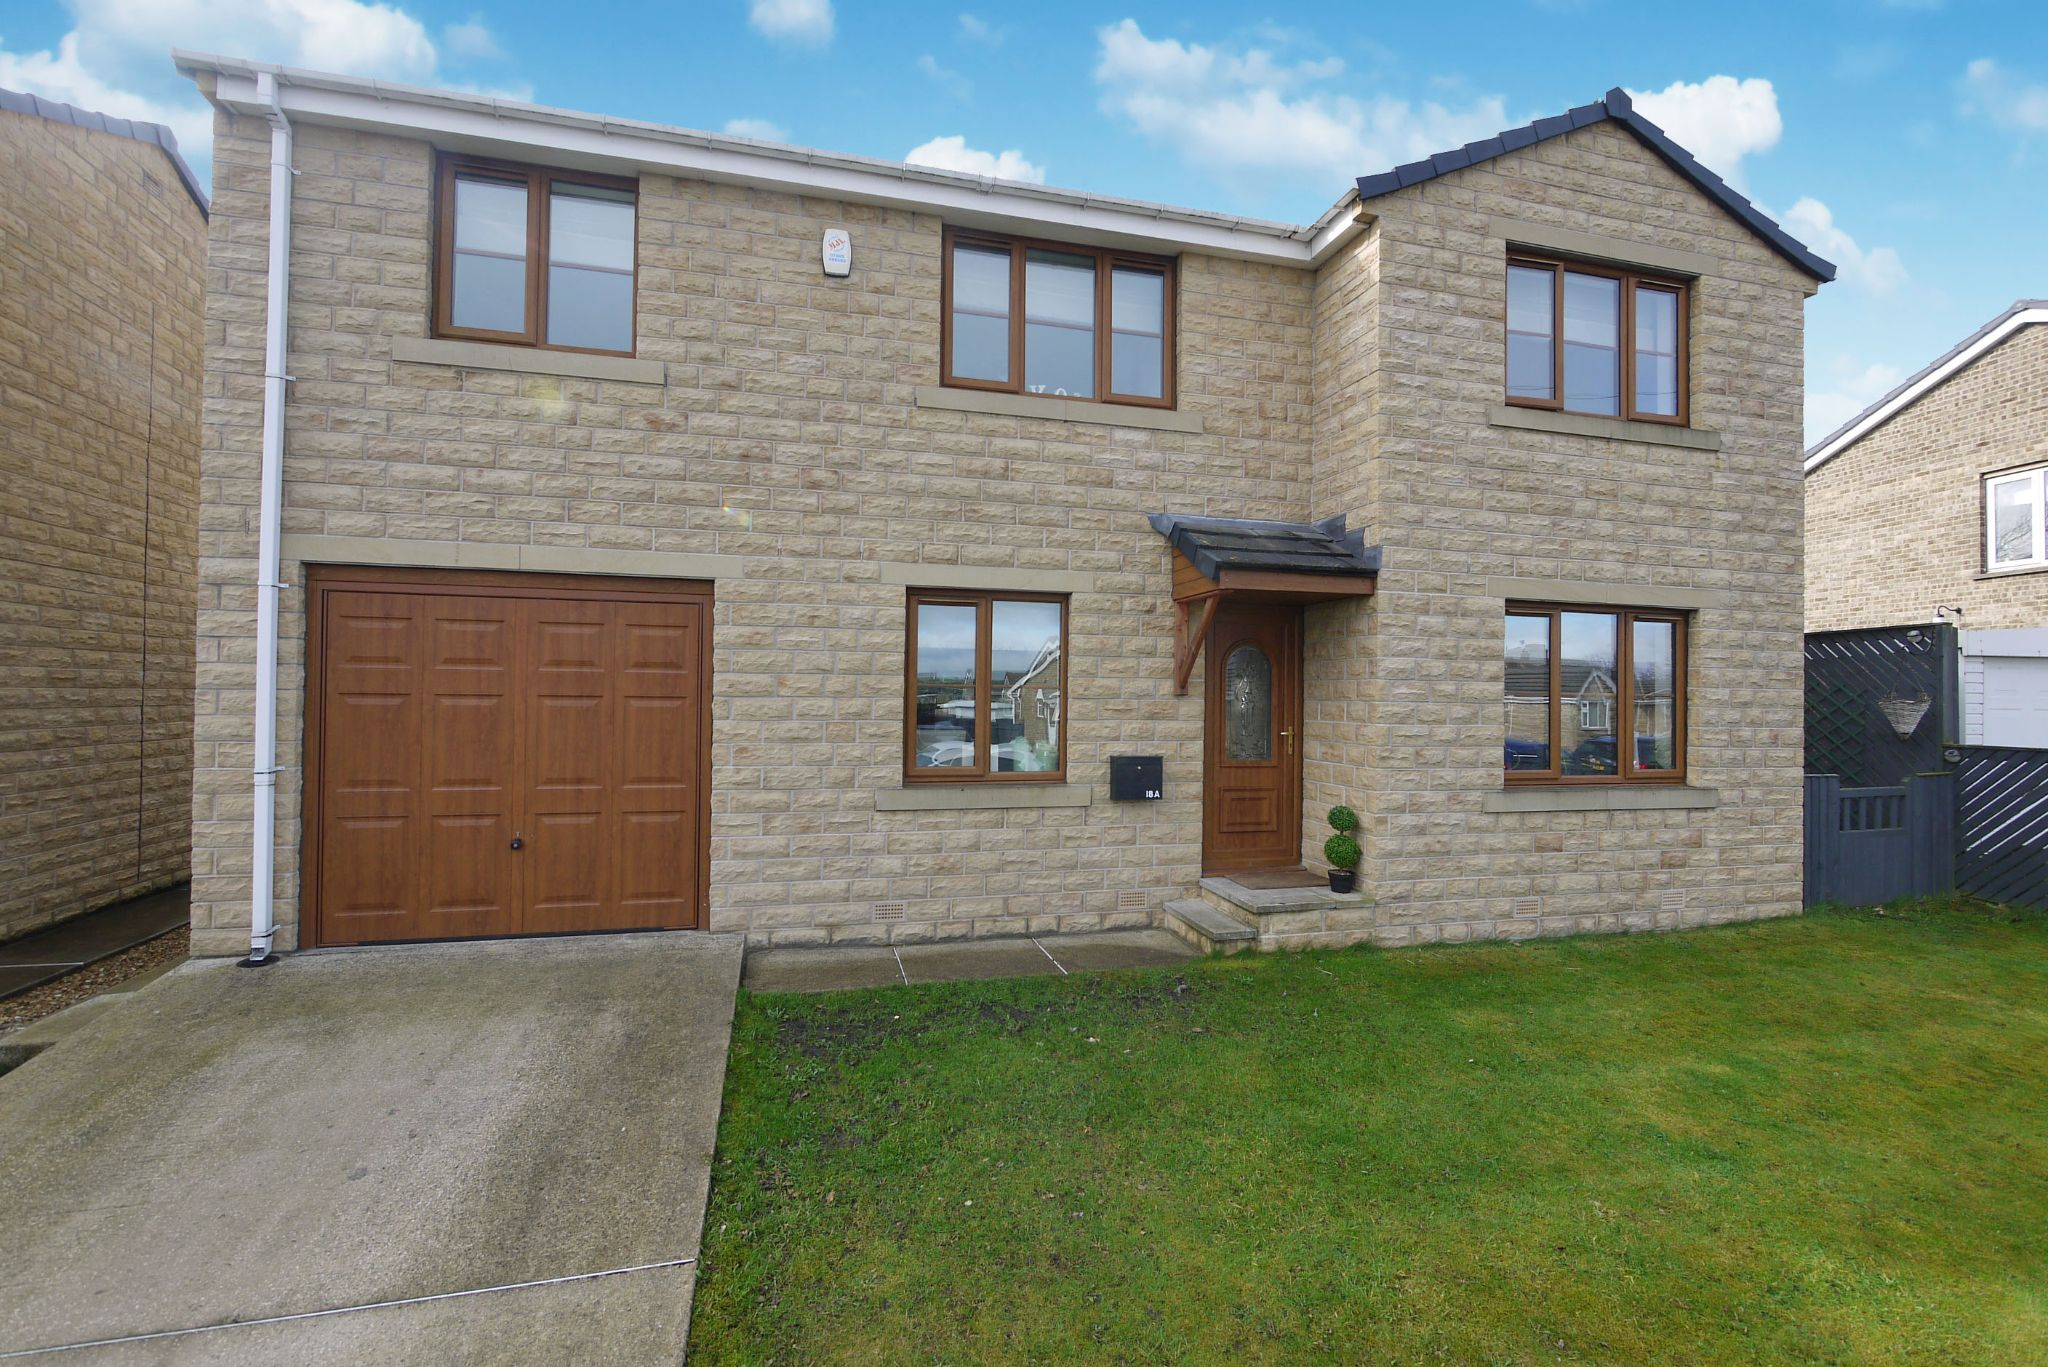 4 bedroom detached house SSTC in Brighouse - Main Shot.